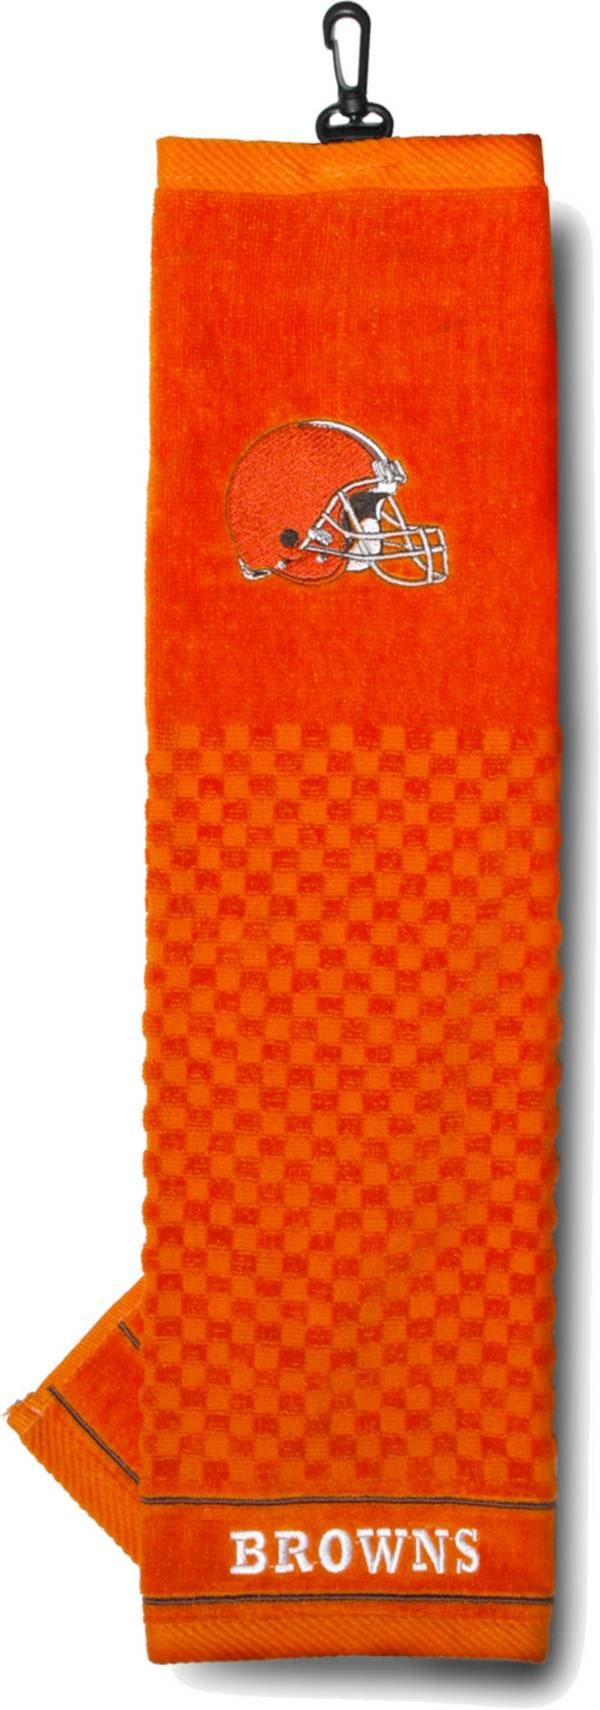 Team Golf Cleveland Browns Embroidered Golf Towel product image